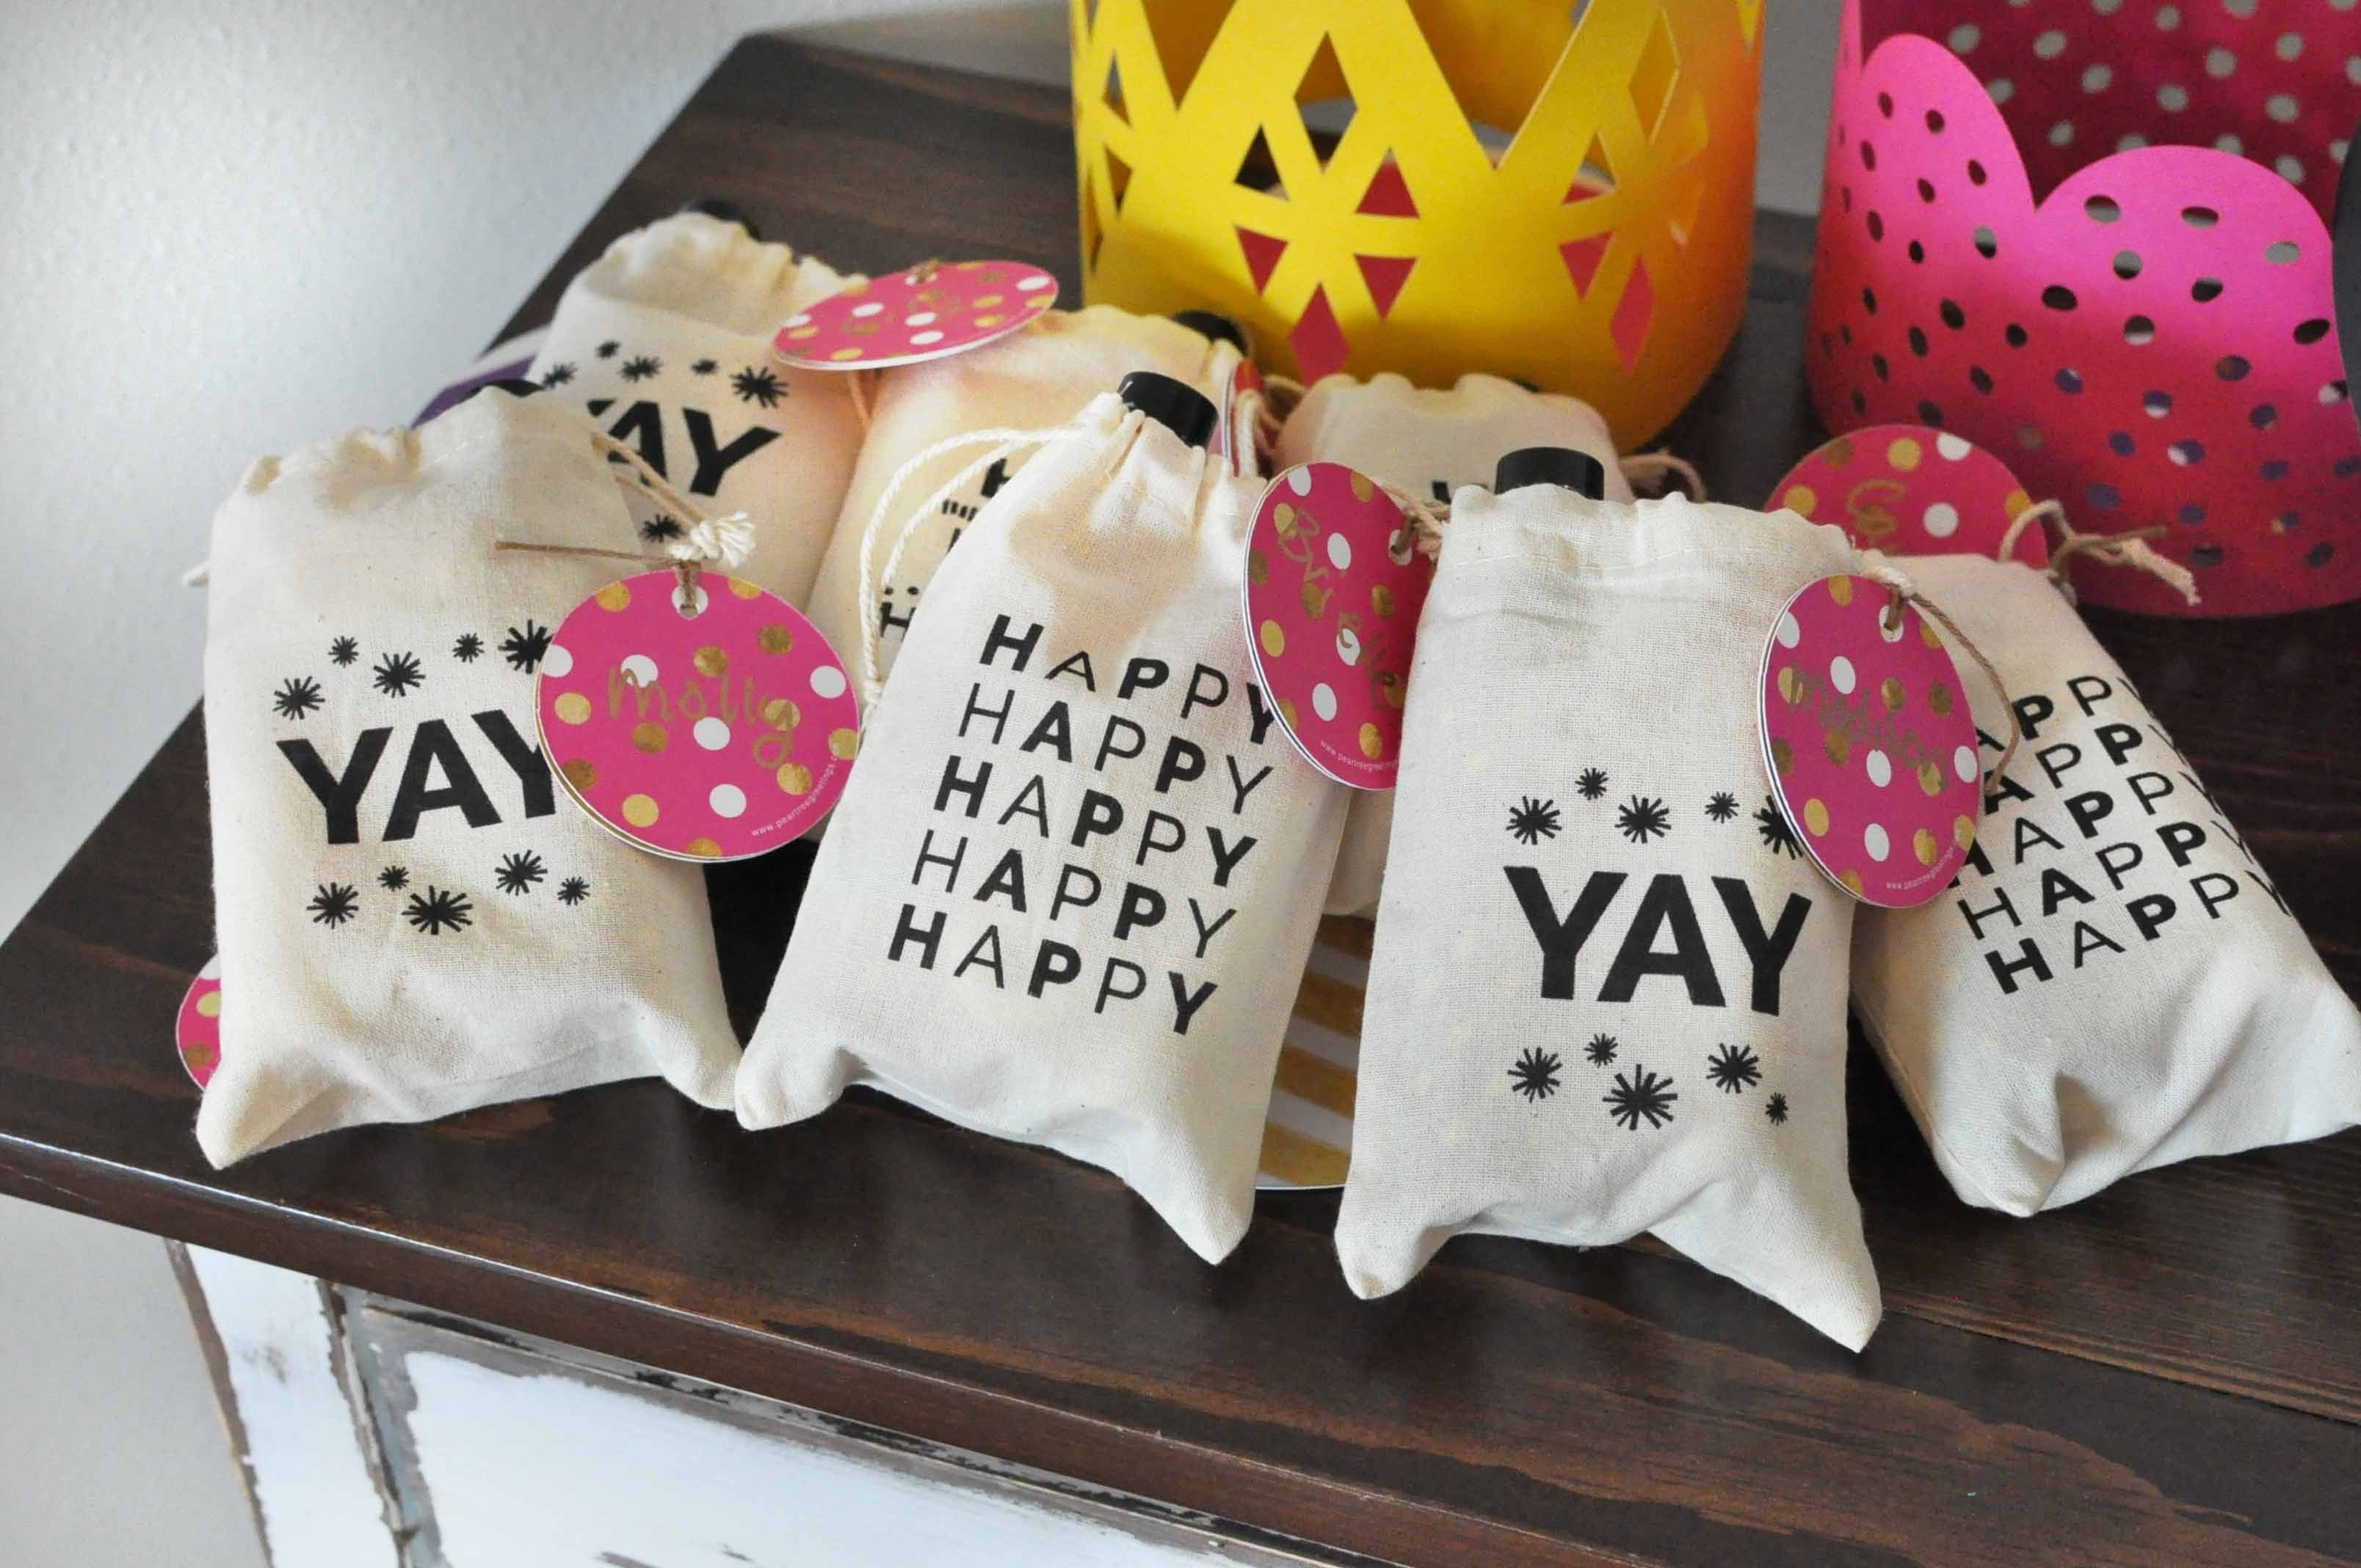 10 Amazing Goodie Bag Ideas For Birthday Party best birthday party goodie bag ideas rhily zoros